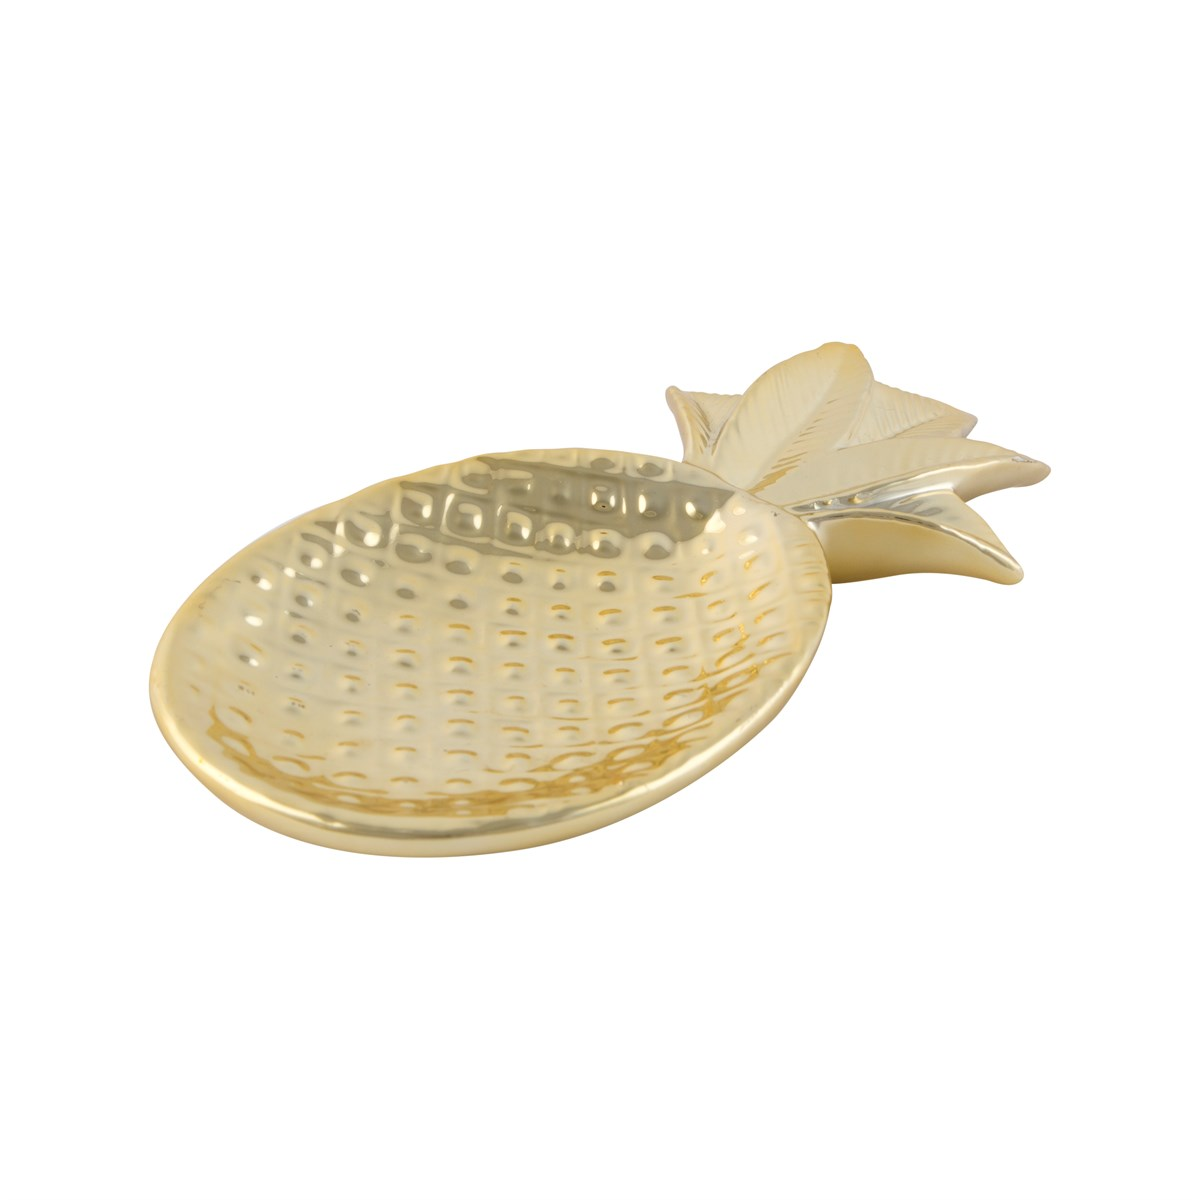 golden pineapple gifts, tropical good quality gifts, pineapple trinket dish